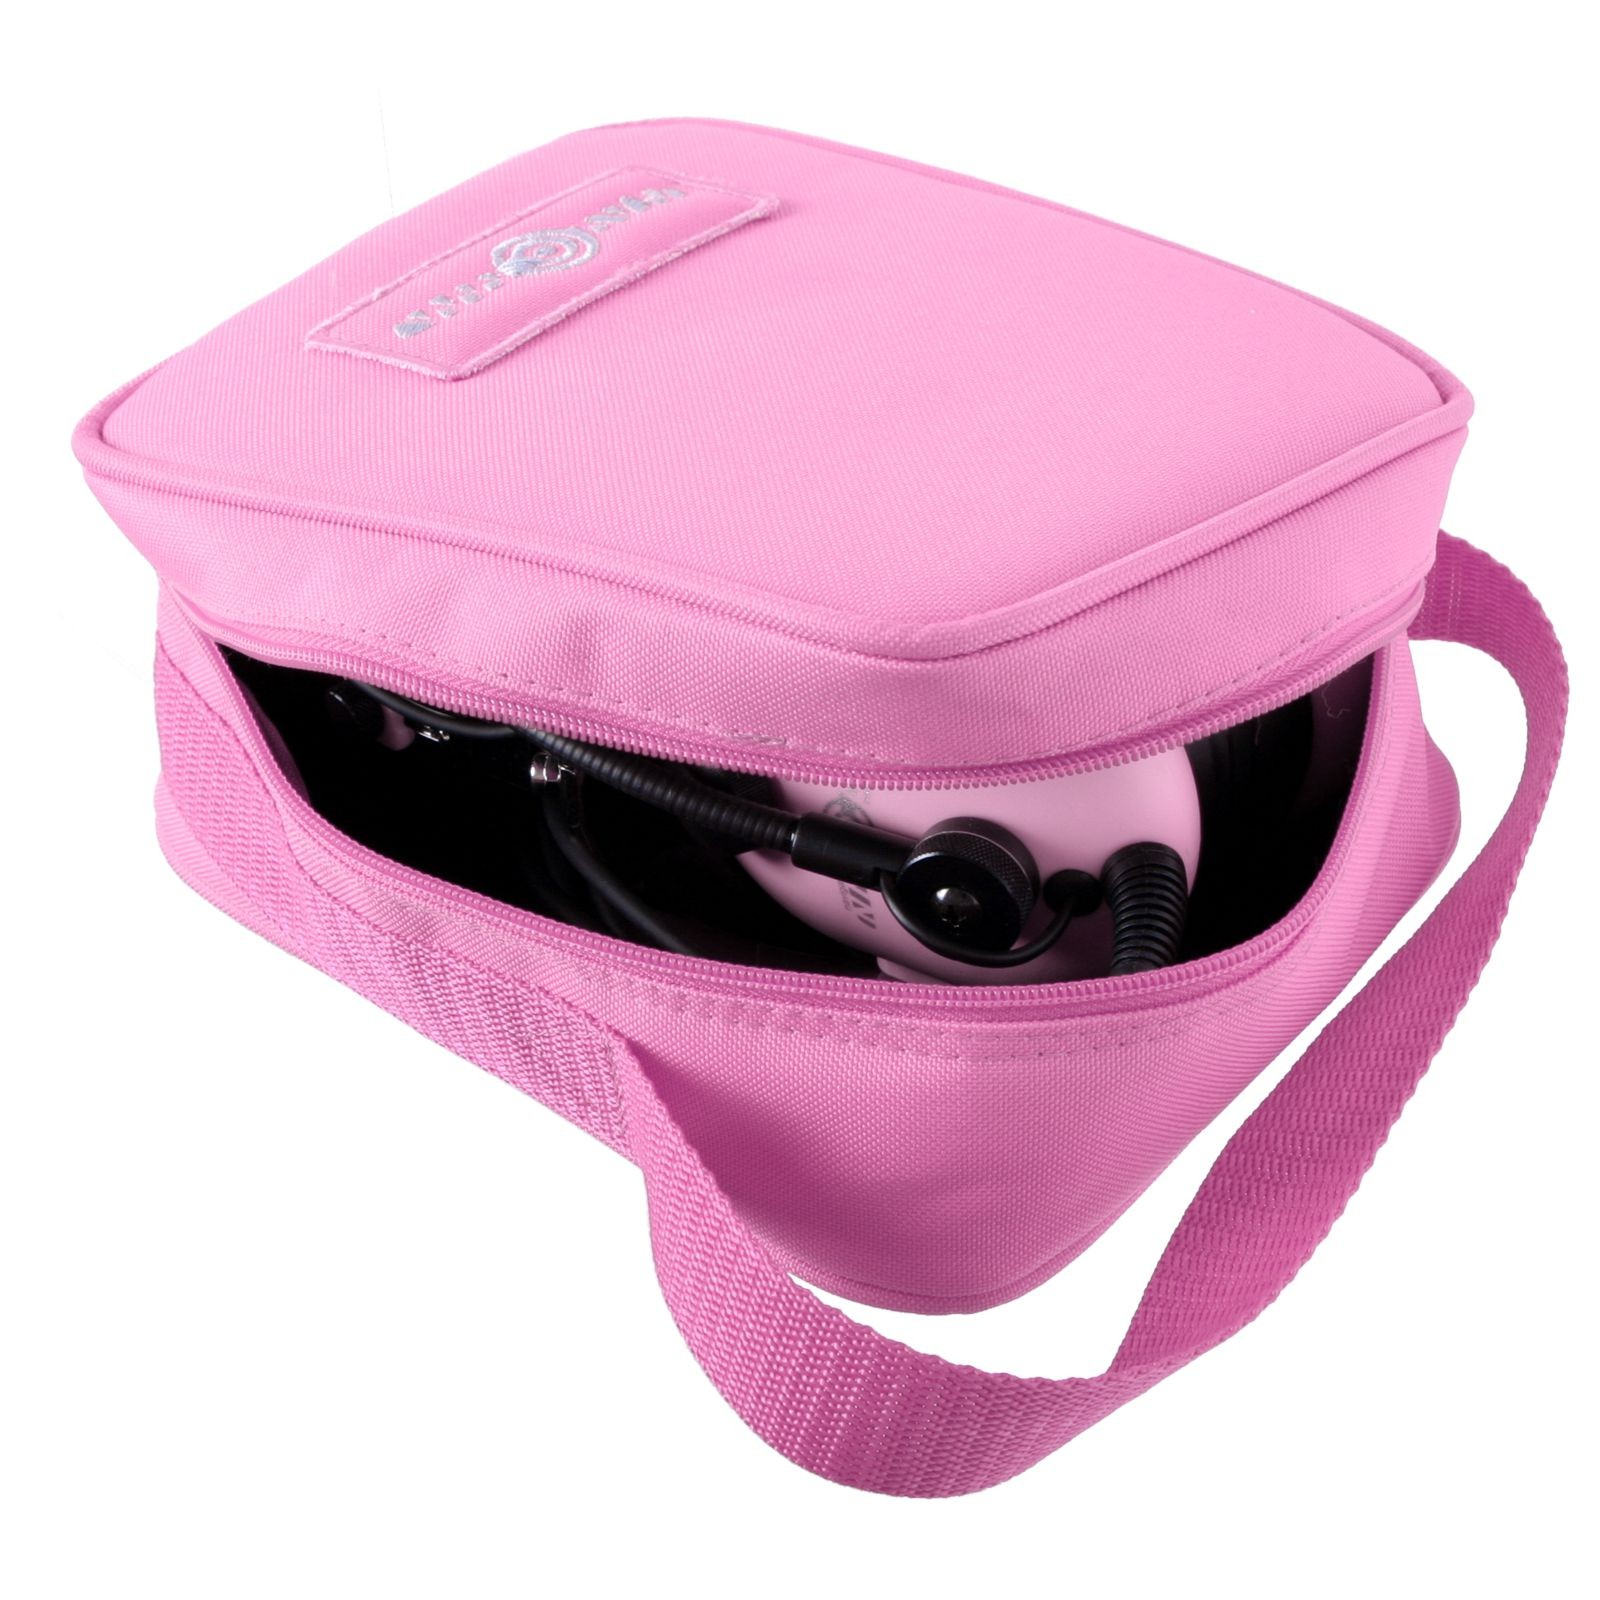 BAG FOR PINK HEADSETS